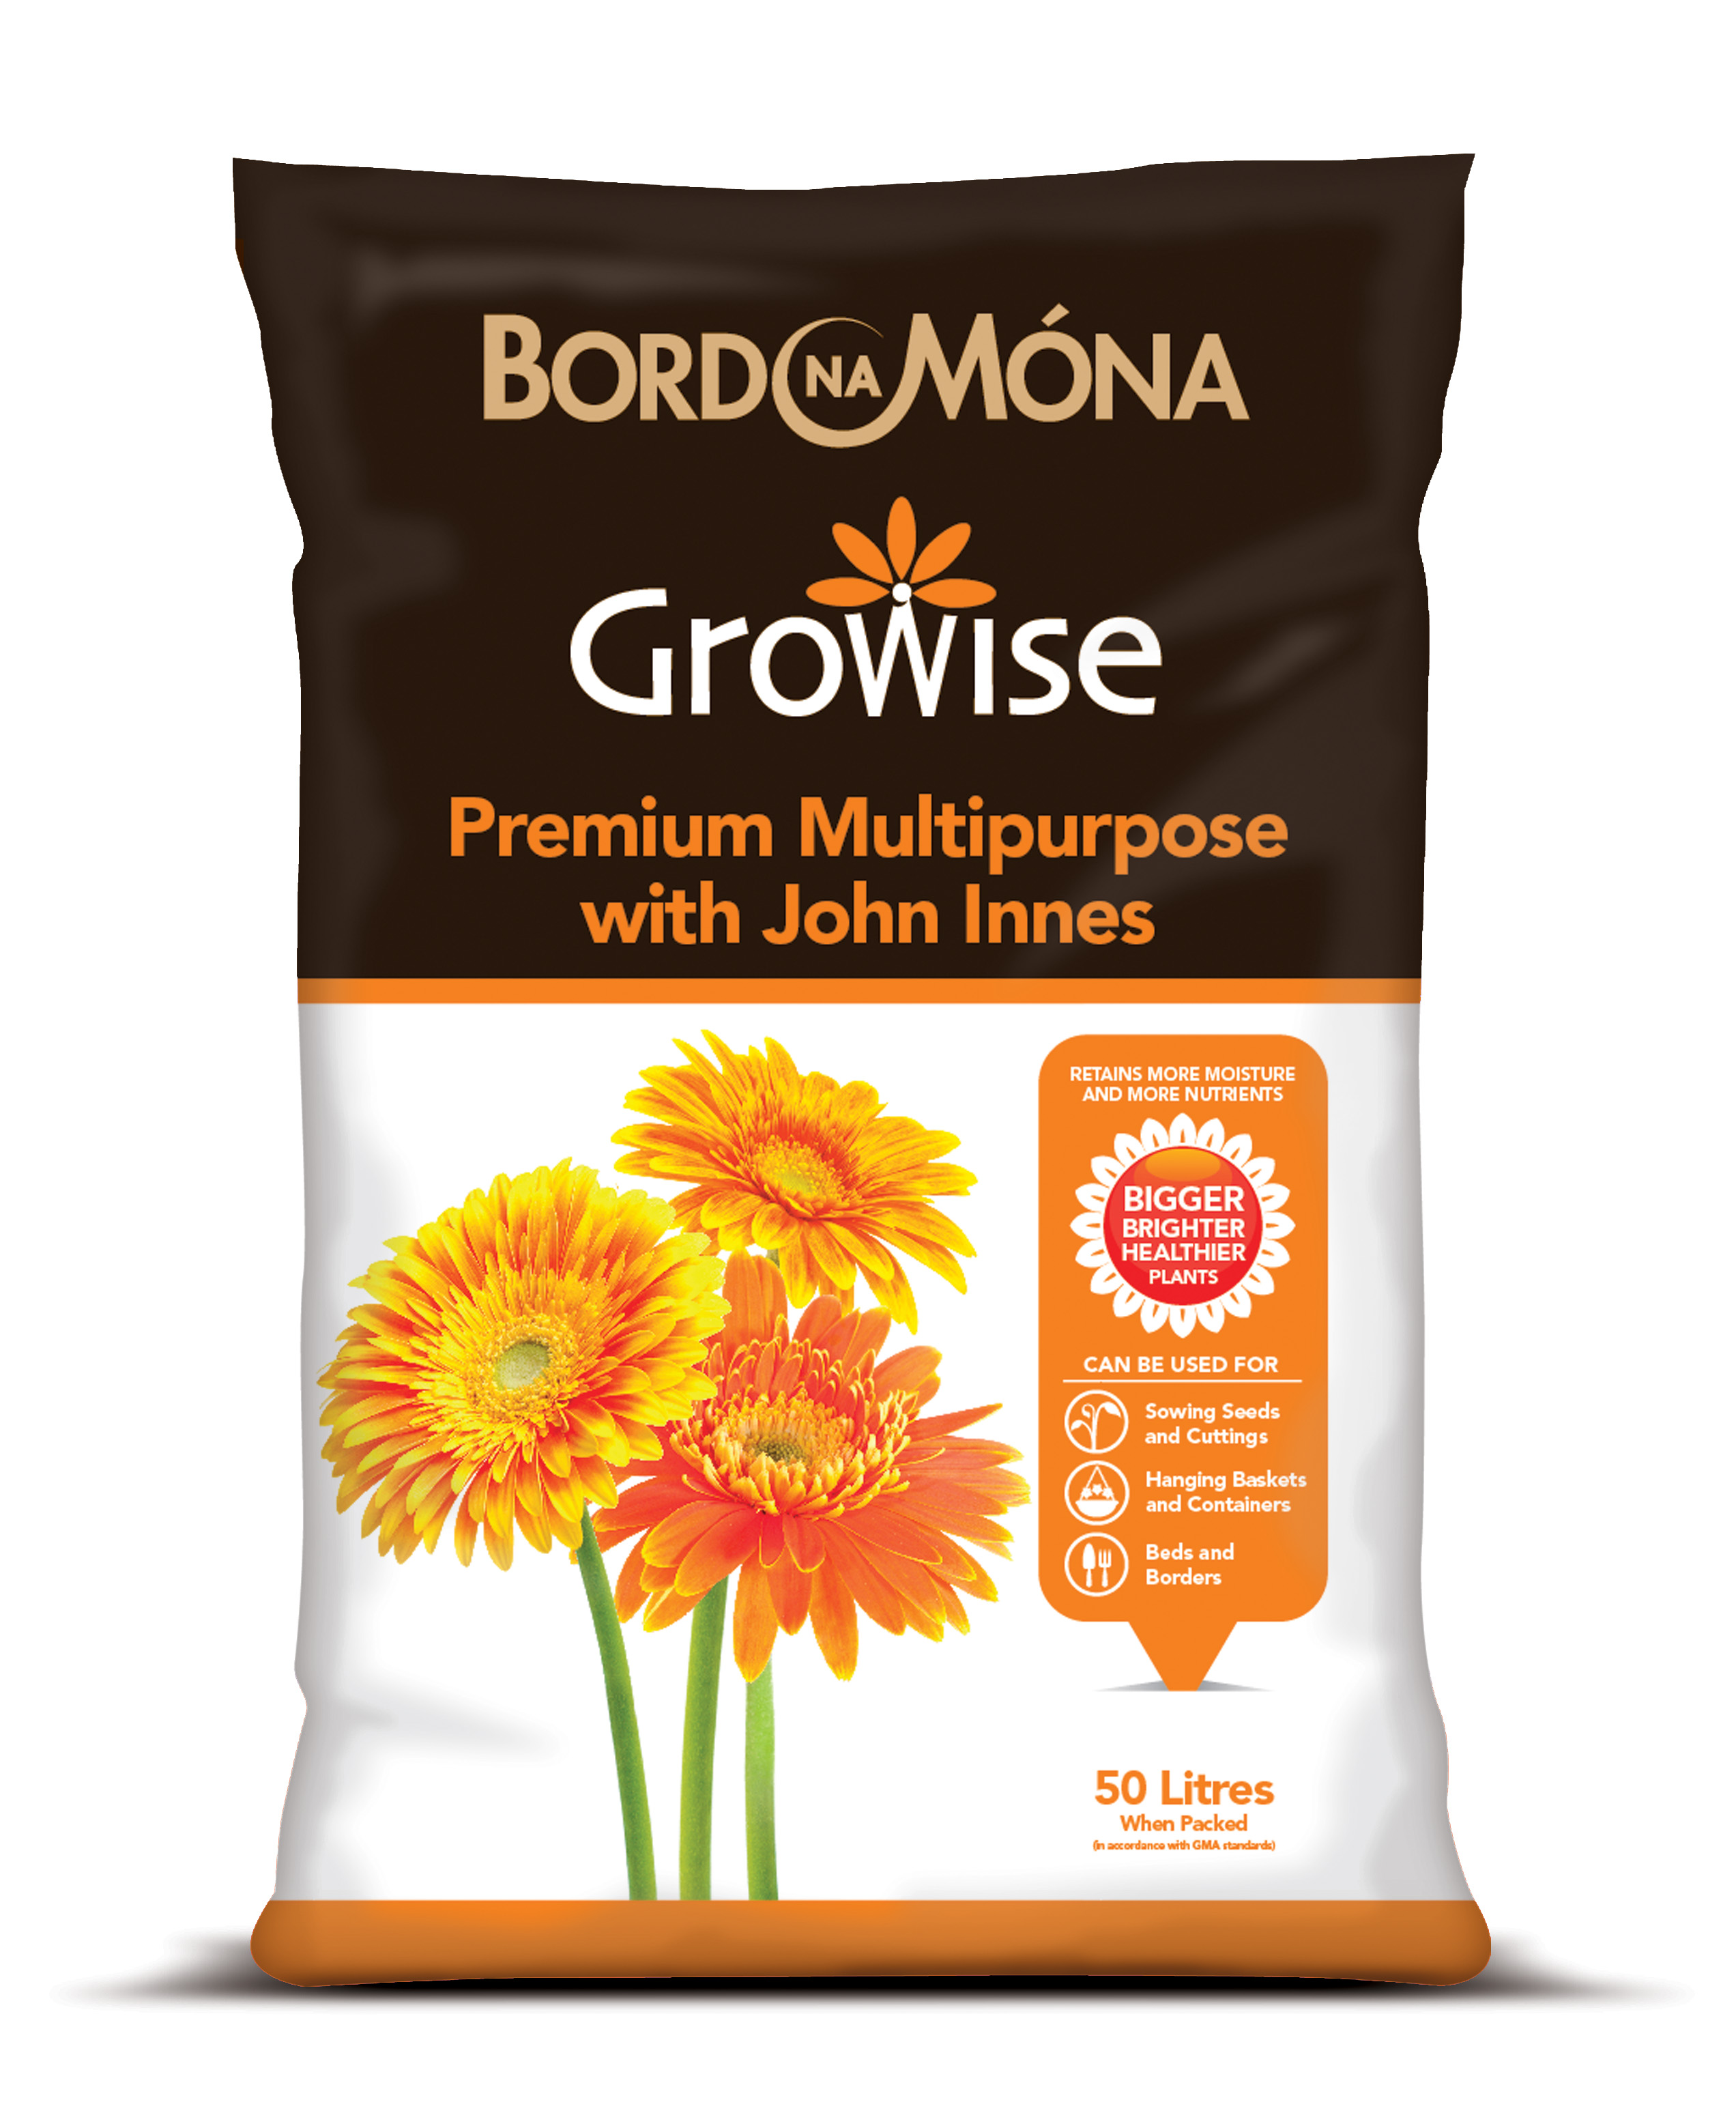 Image for westland multi purpose compost with john innes 50l from - Bord Na Mna Growise Premium Compost With John Innes